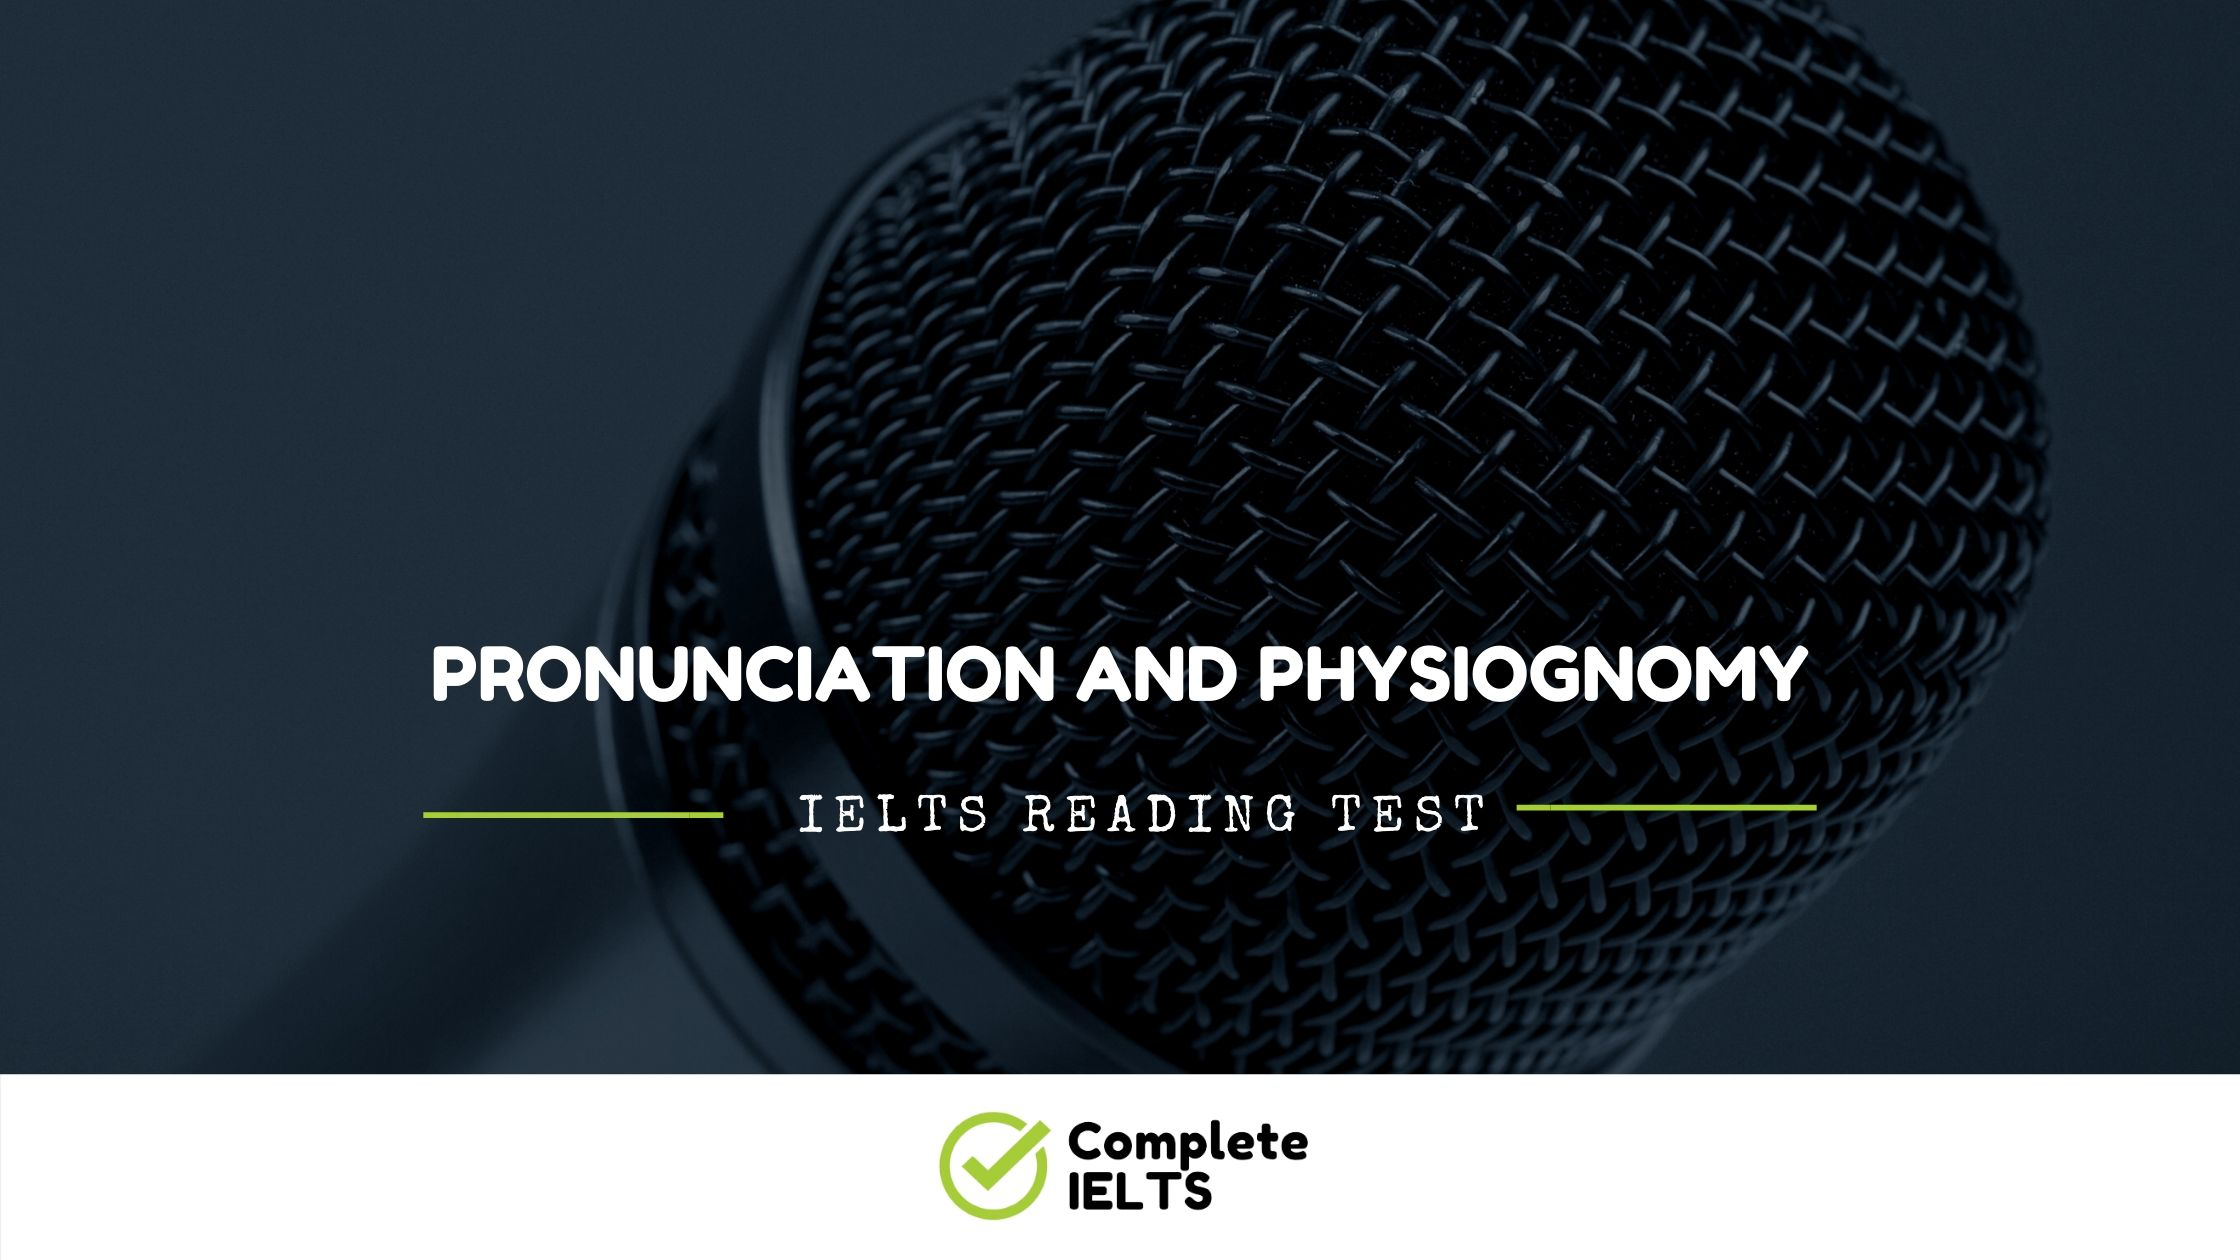 Pronunciation and physiognomy